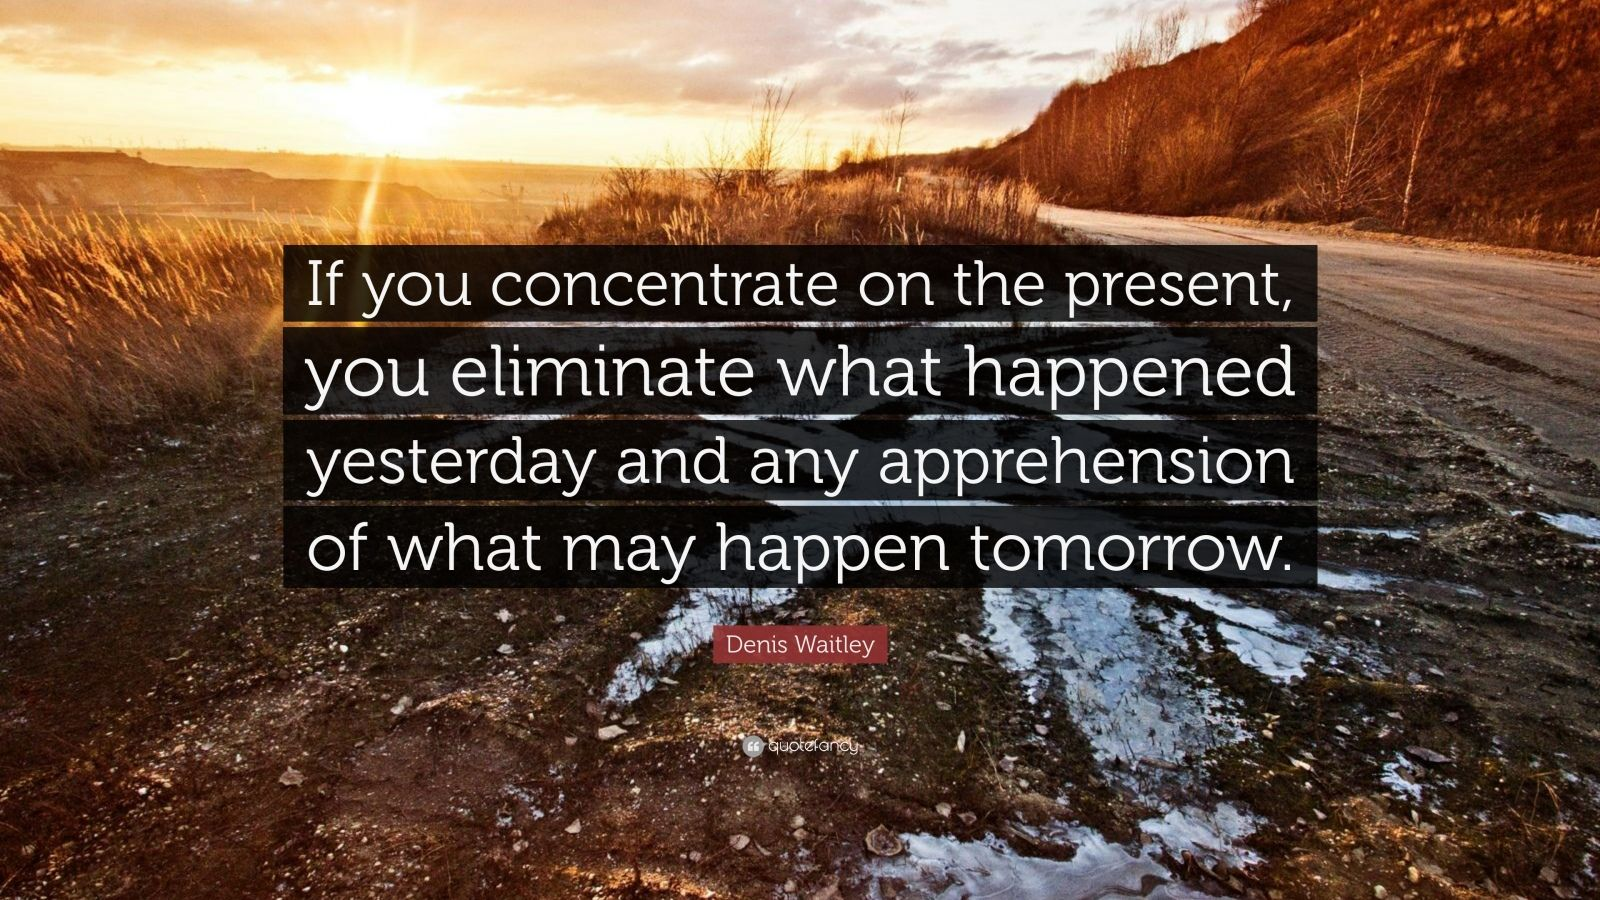 """Denis Waitley Quote: """"If you concentrate on the present, you eliminate what happened yesterday and any apprehension of what may happen tomorrow."""""""